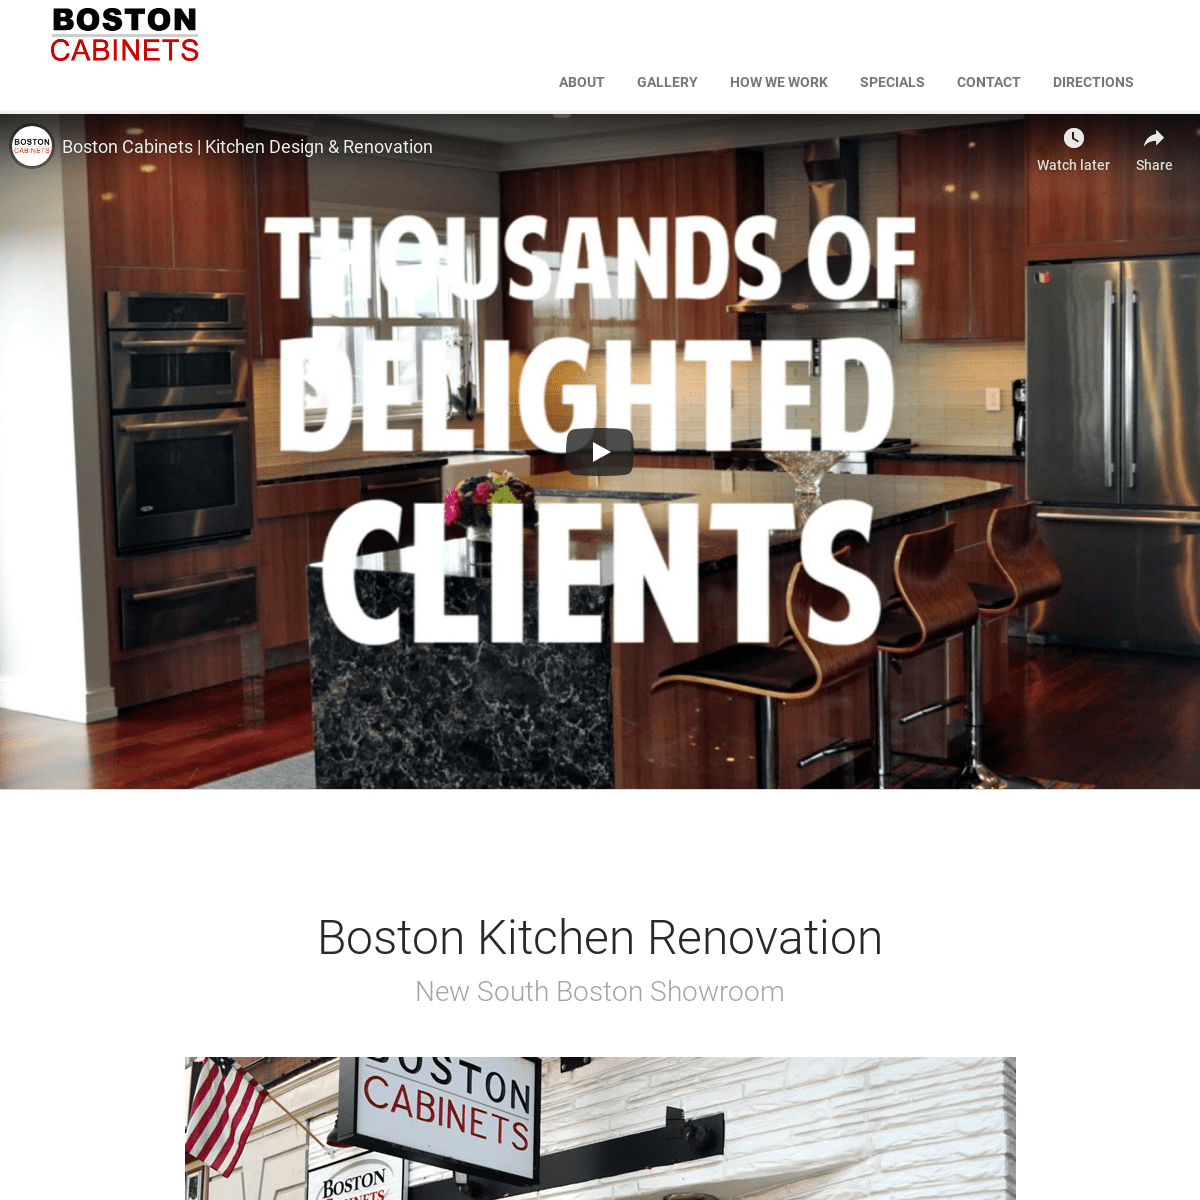 Boston Cabinets - Kitchen Design, Renovation, Remodel